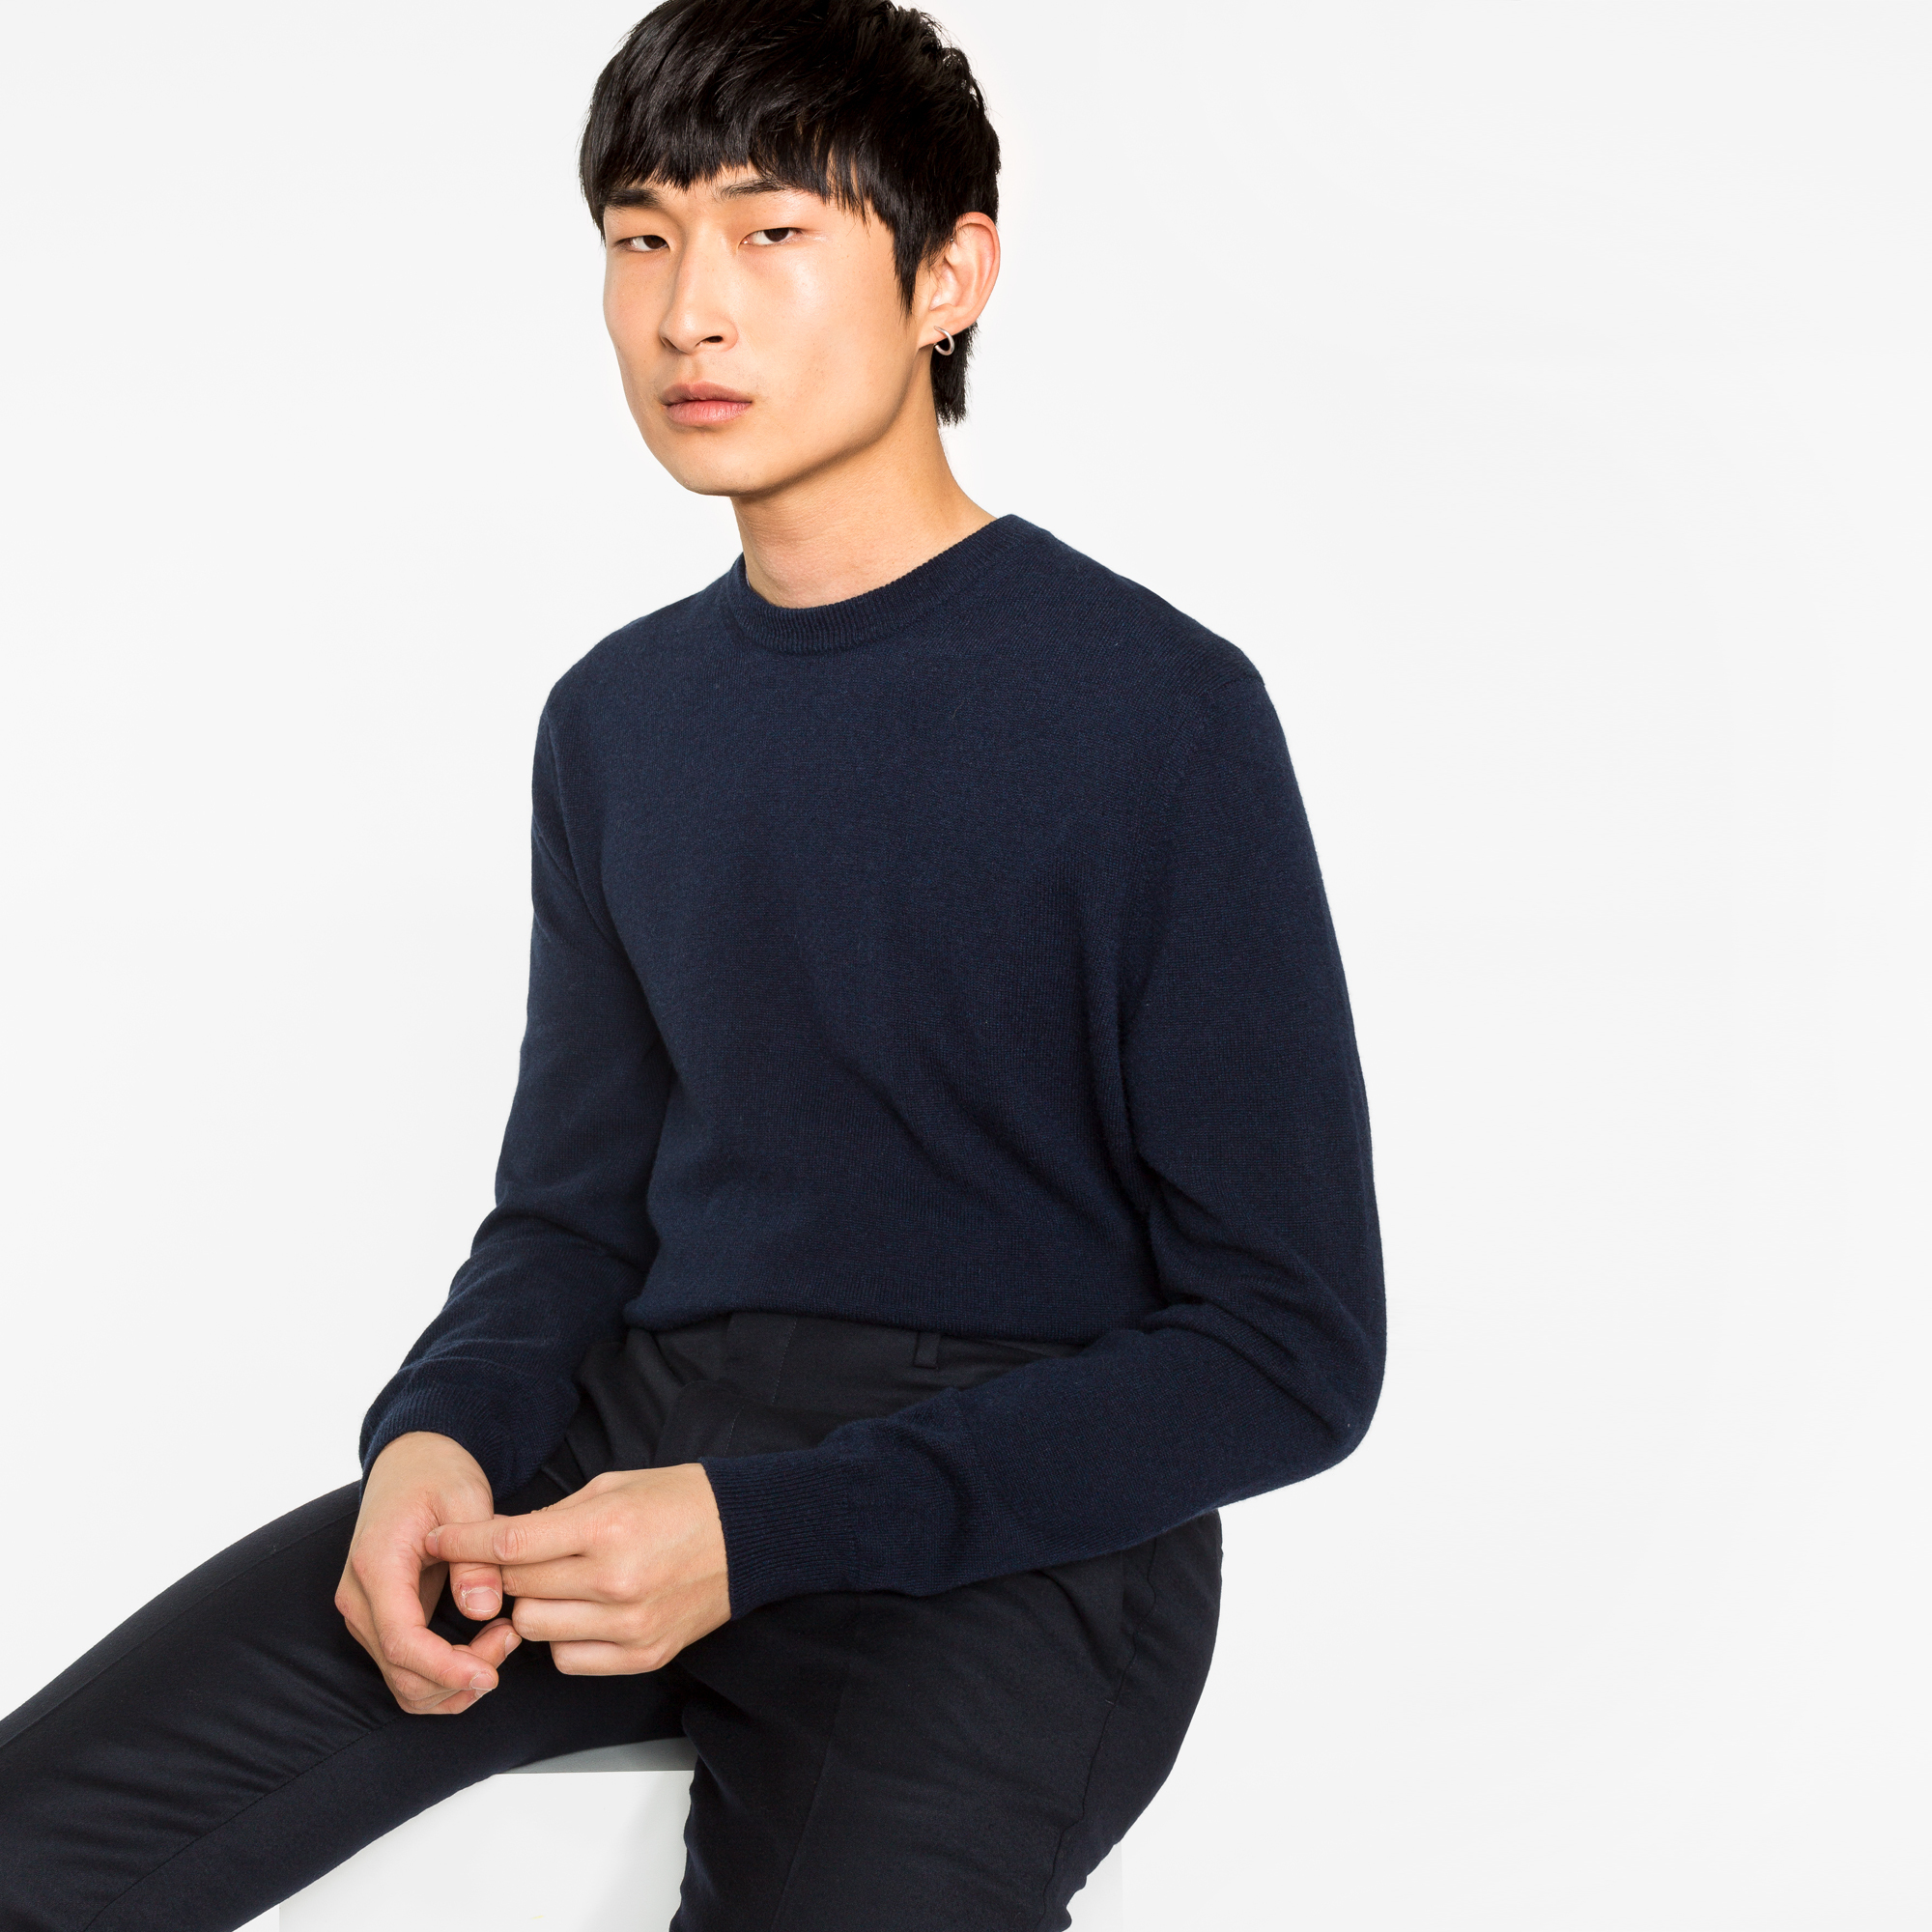 Paul Smith Men's Navy Cashmere Sweater